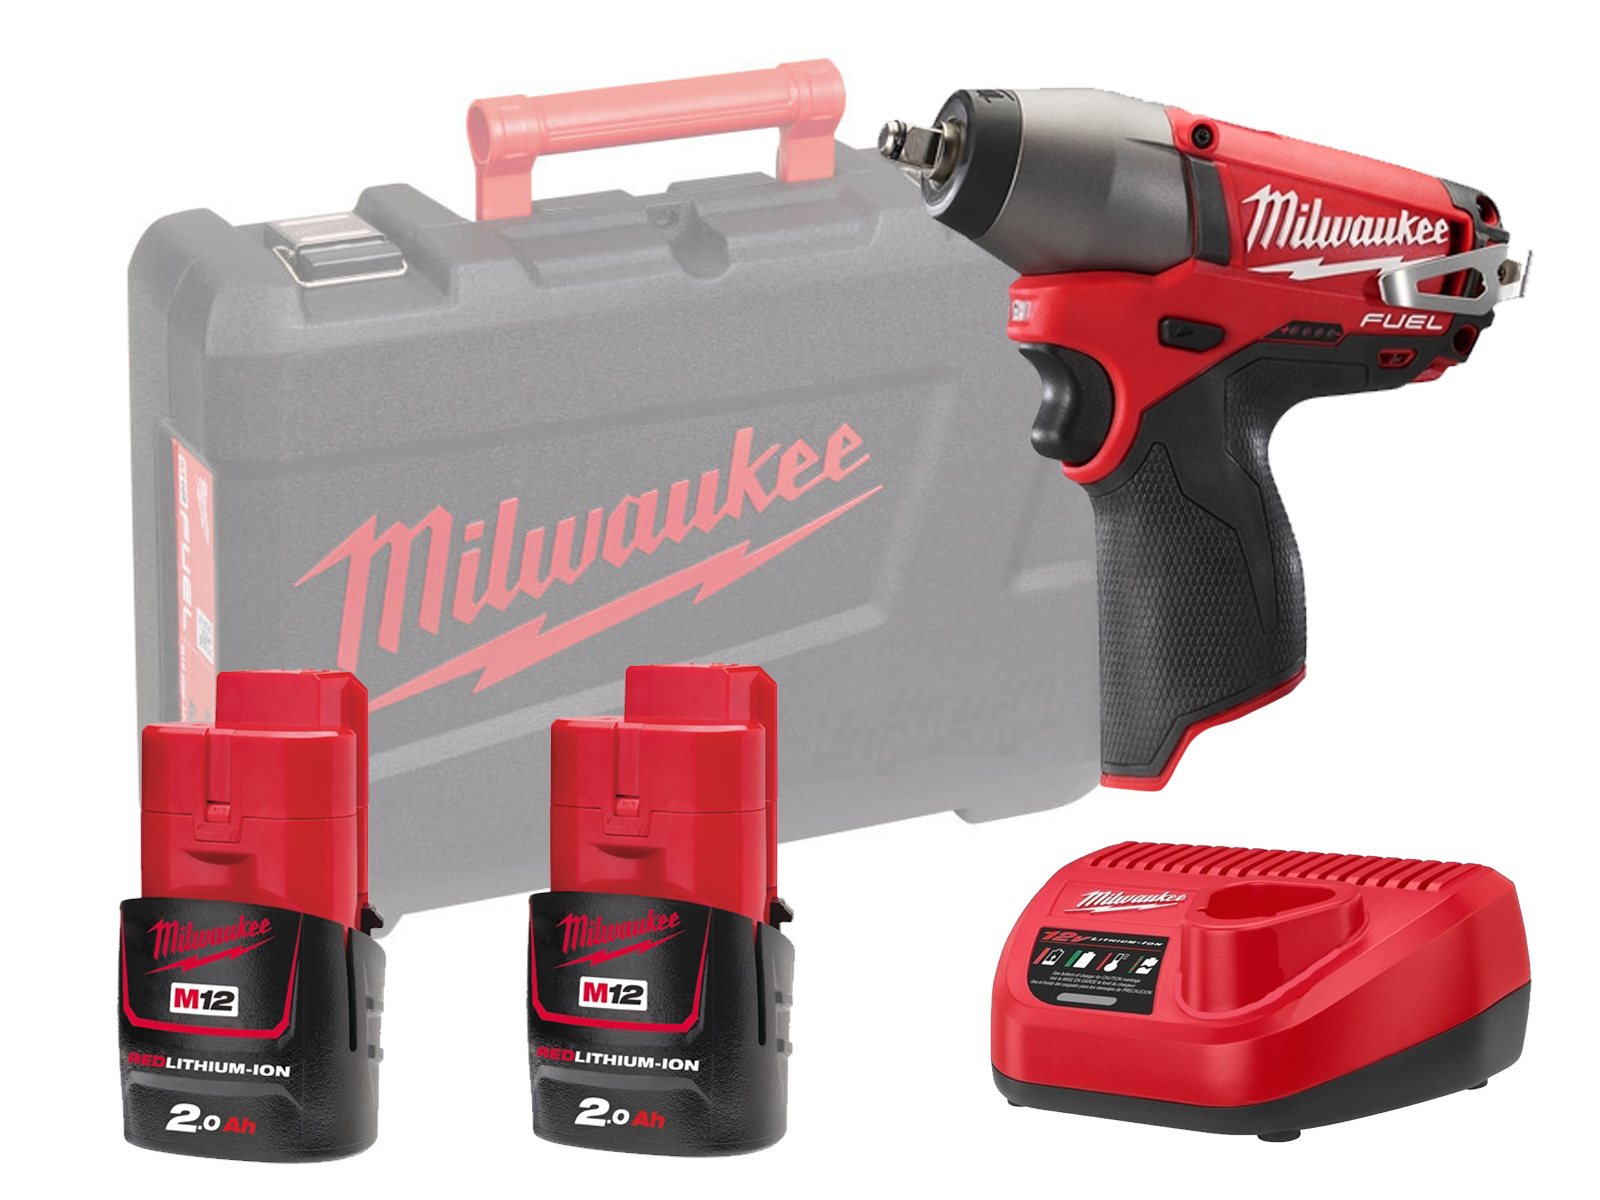 """MILWAUKEE 12V FUEL IMPACT WRENCH 1/2"""" - M12CIW12 - 2.0AH PACK"""